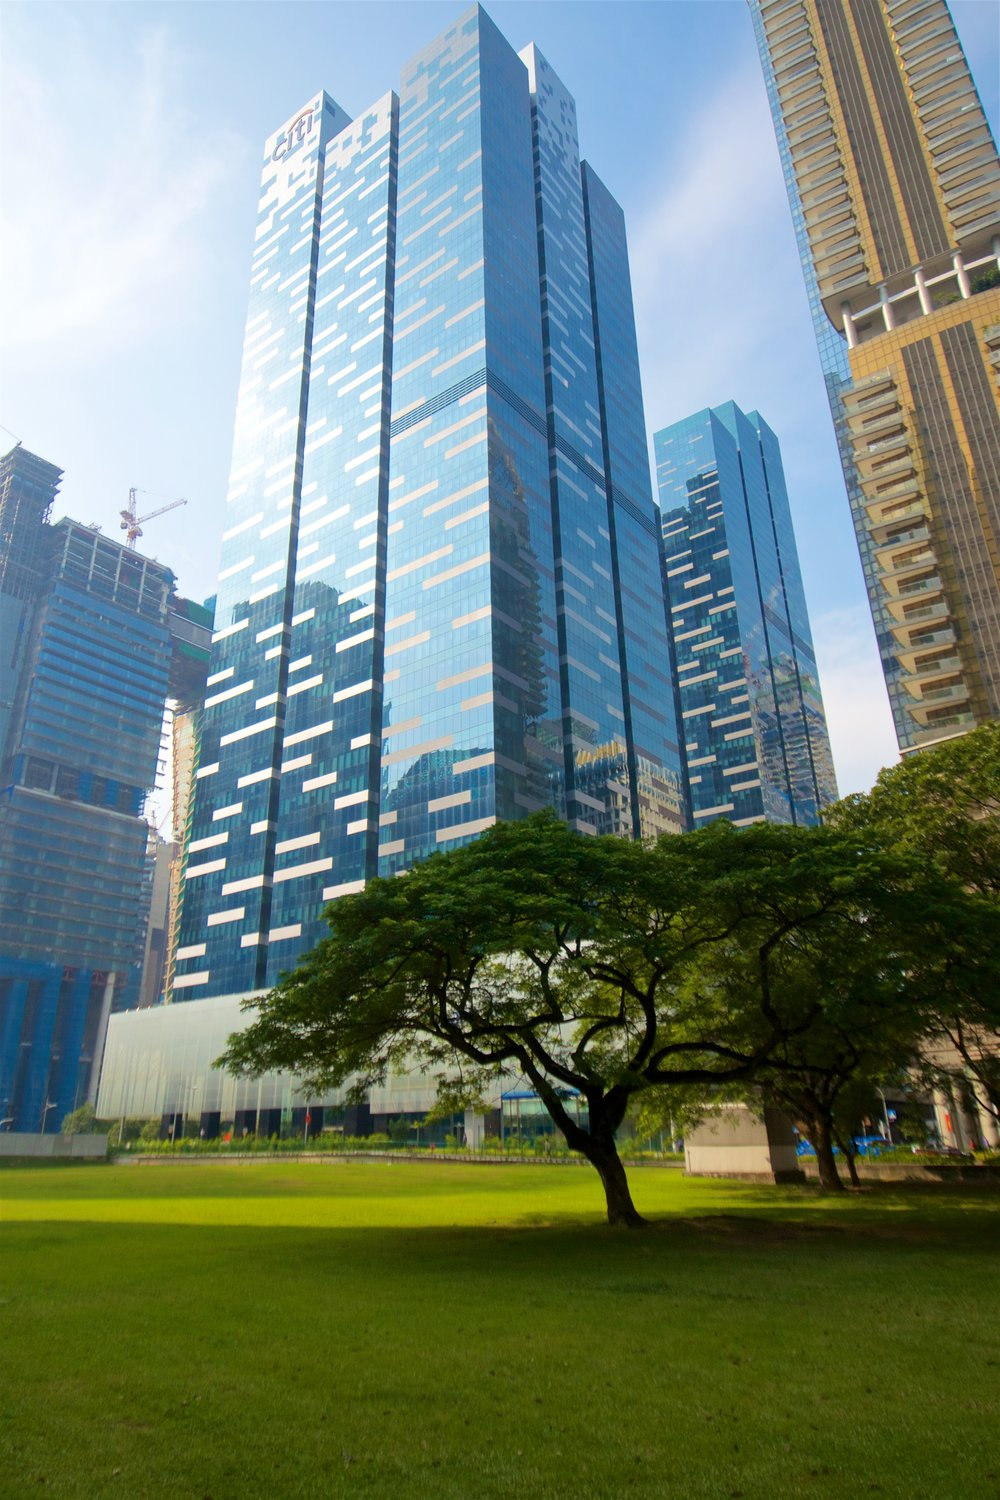 asia-square-towers-and-a-tree_29901585121_o.jpg